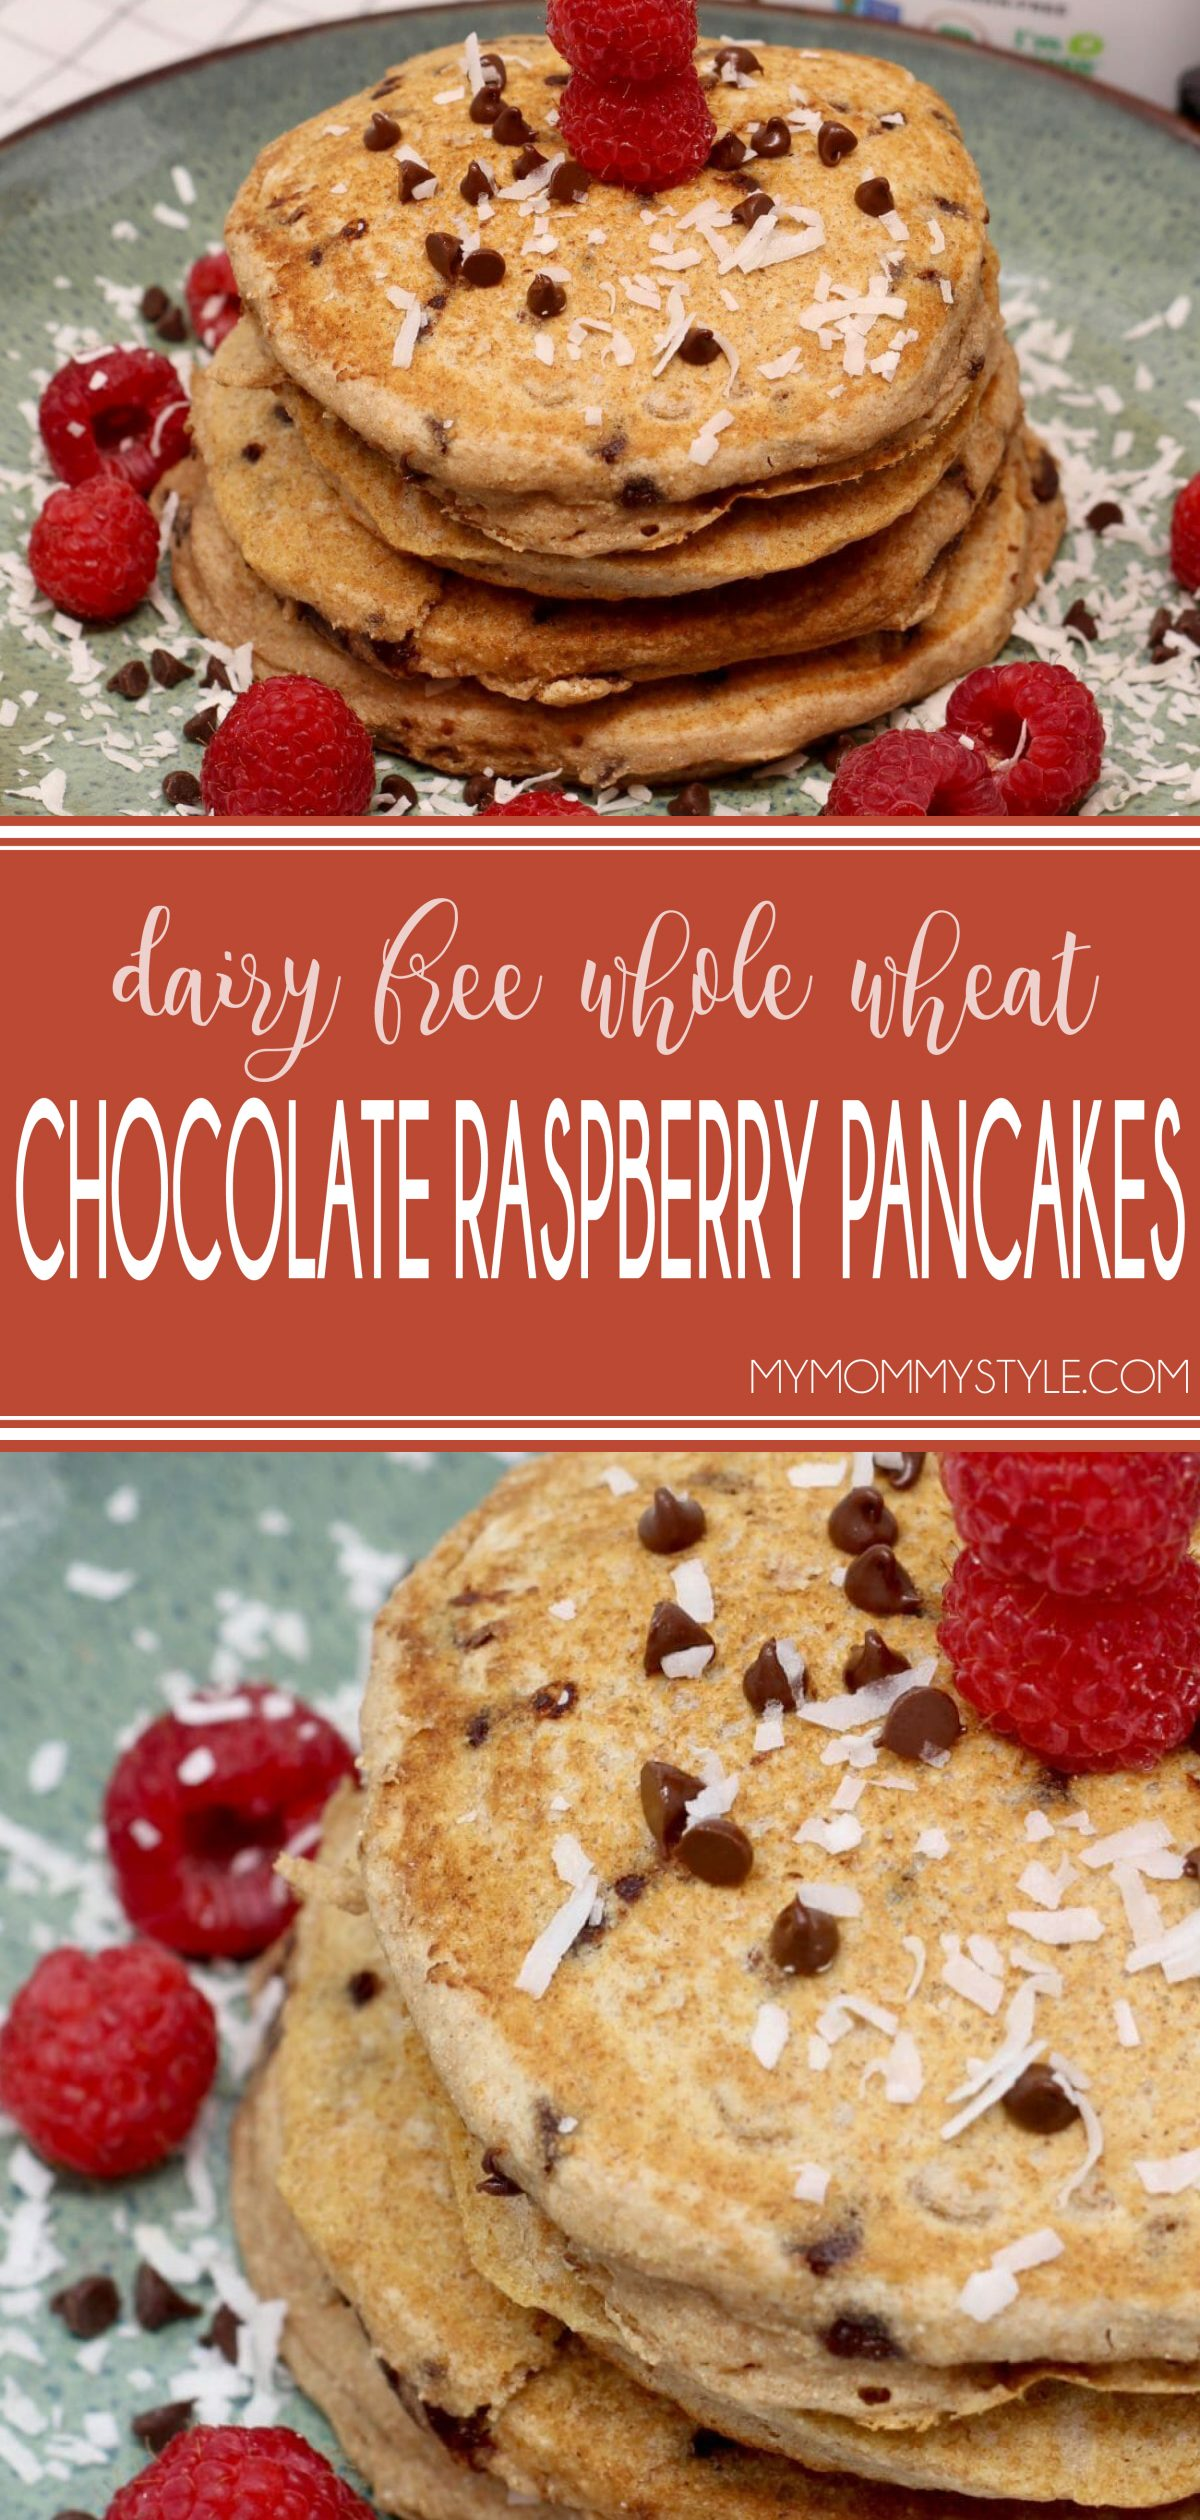 Pancakes worth waking up for, these Dairy Free Whole Wheat Chocolate Raspberry Pancakes are an incredible way to start your day. via @mymommystyle